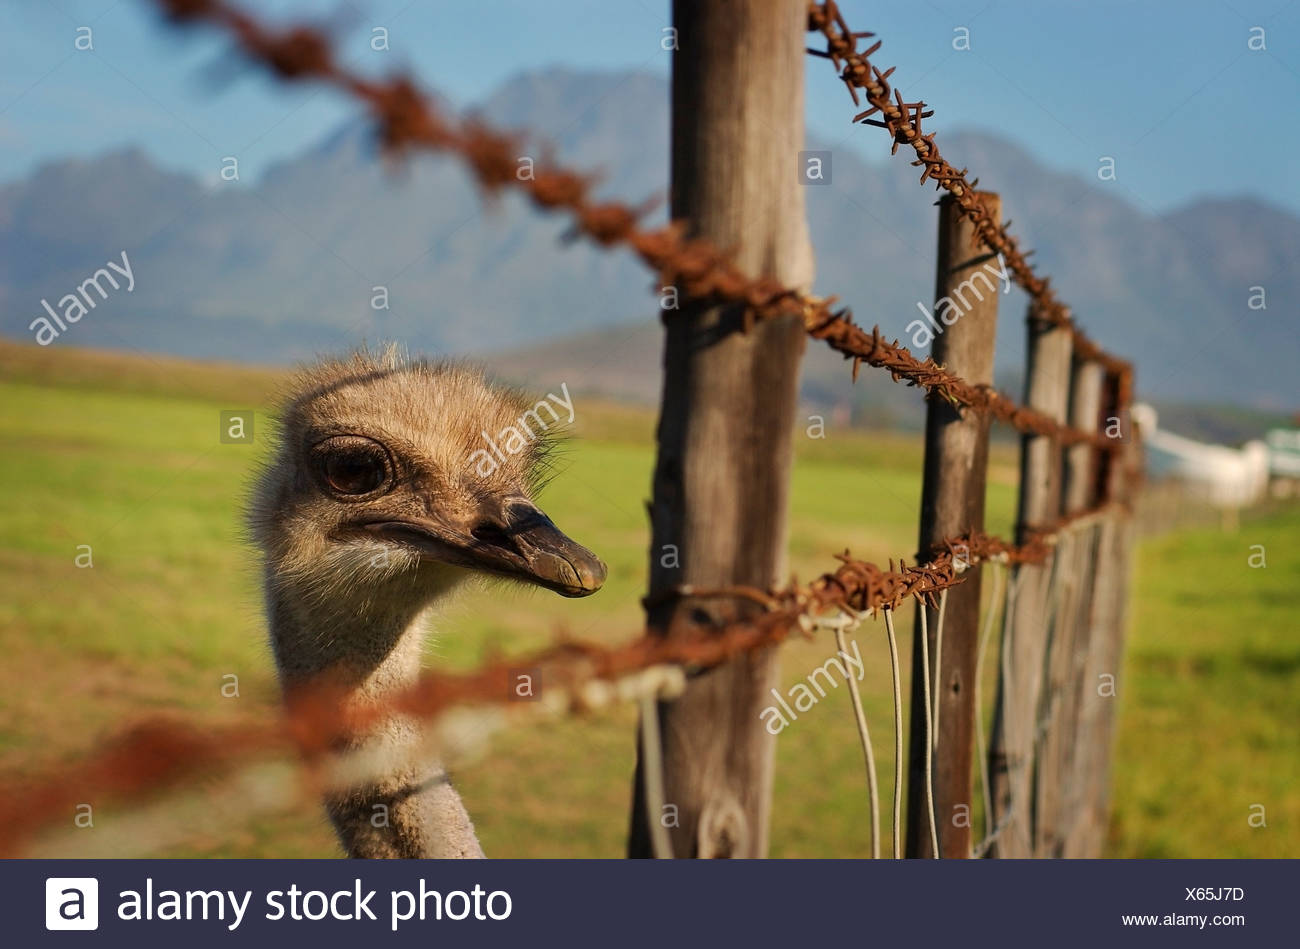 Ostrich looking through barbed fence - Stock Image